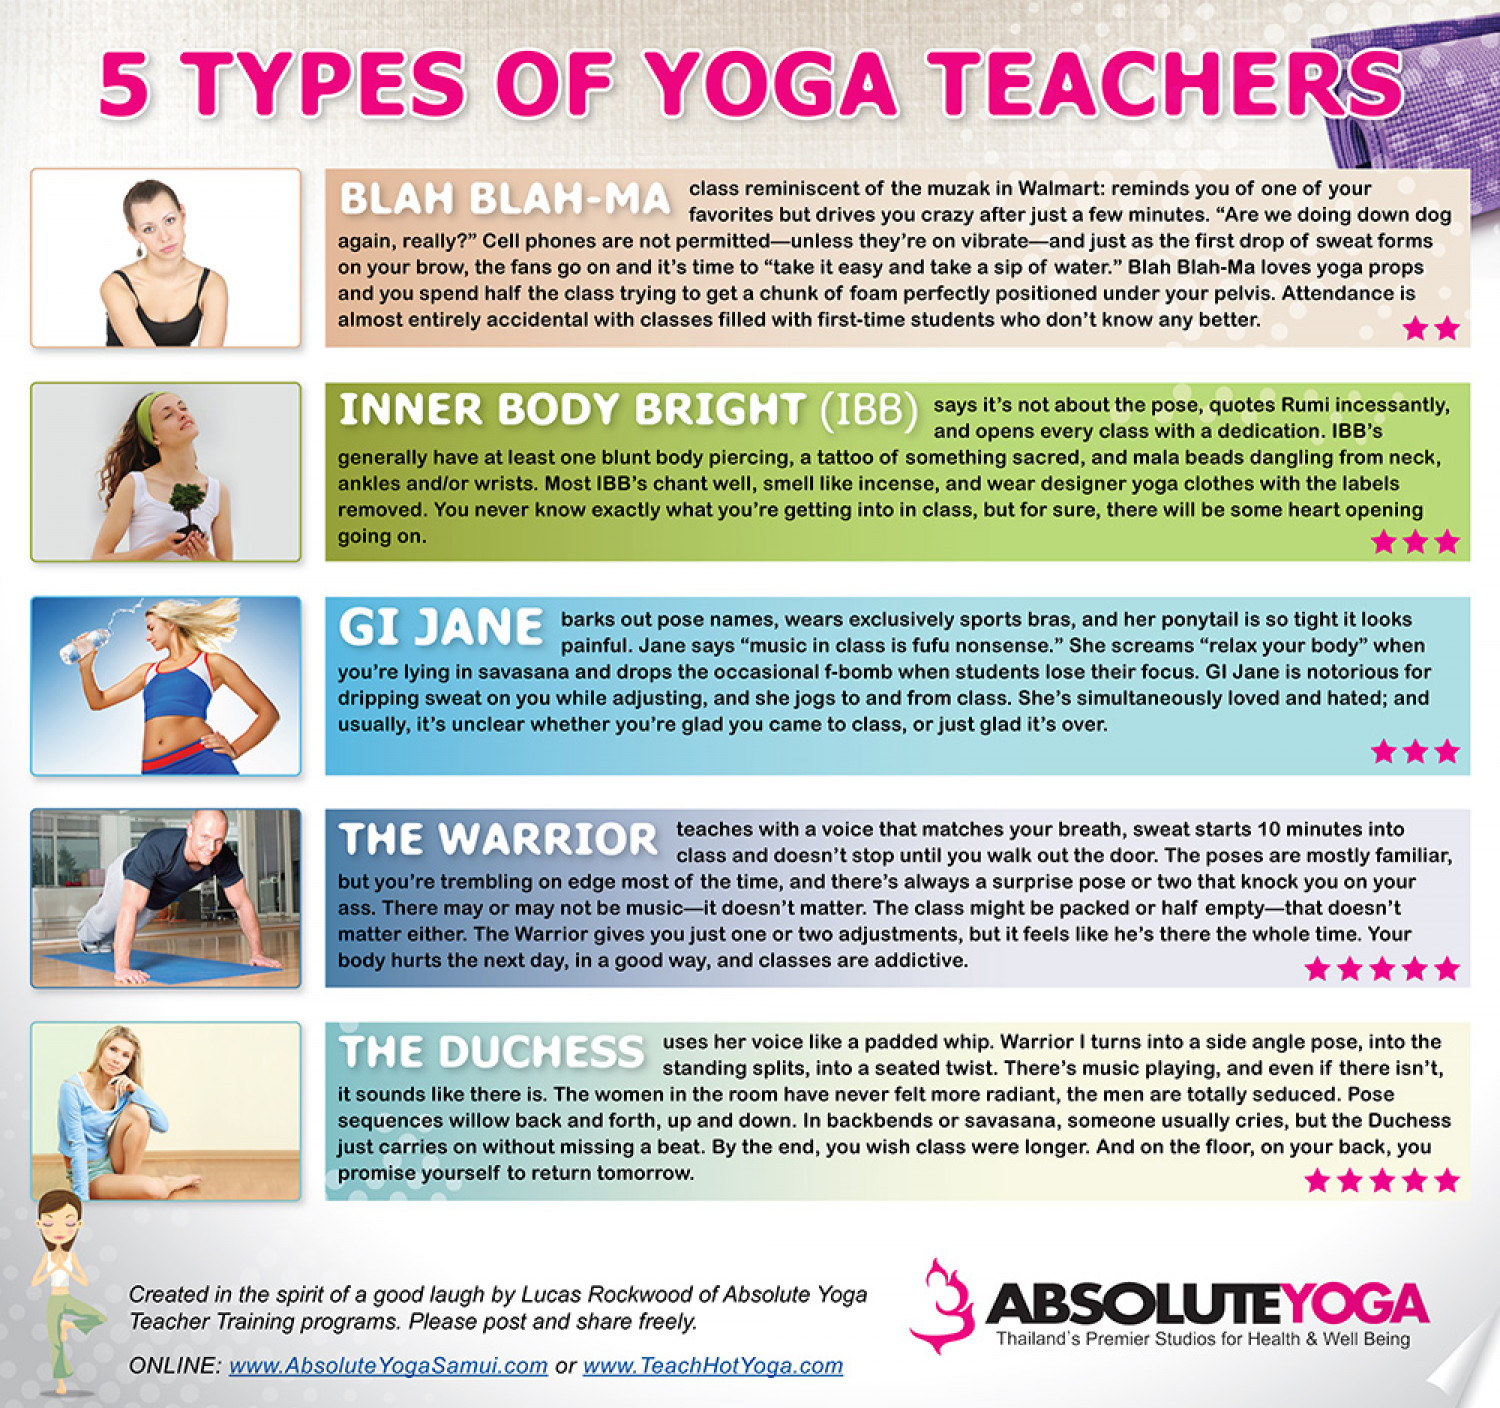 Five Types of Yoga Teachers Infographic